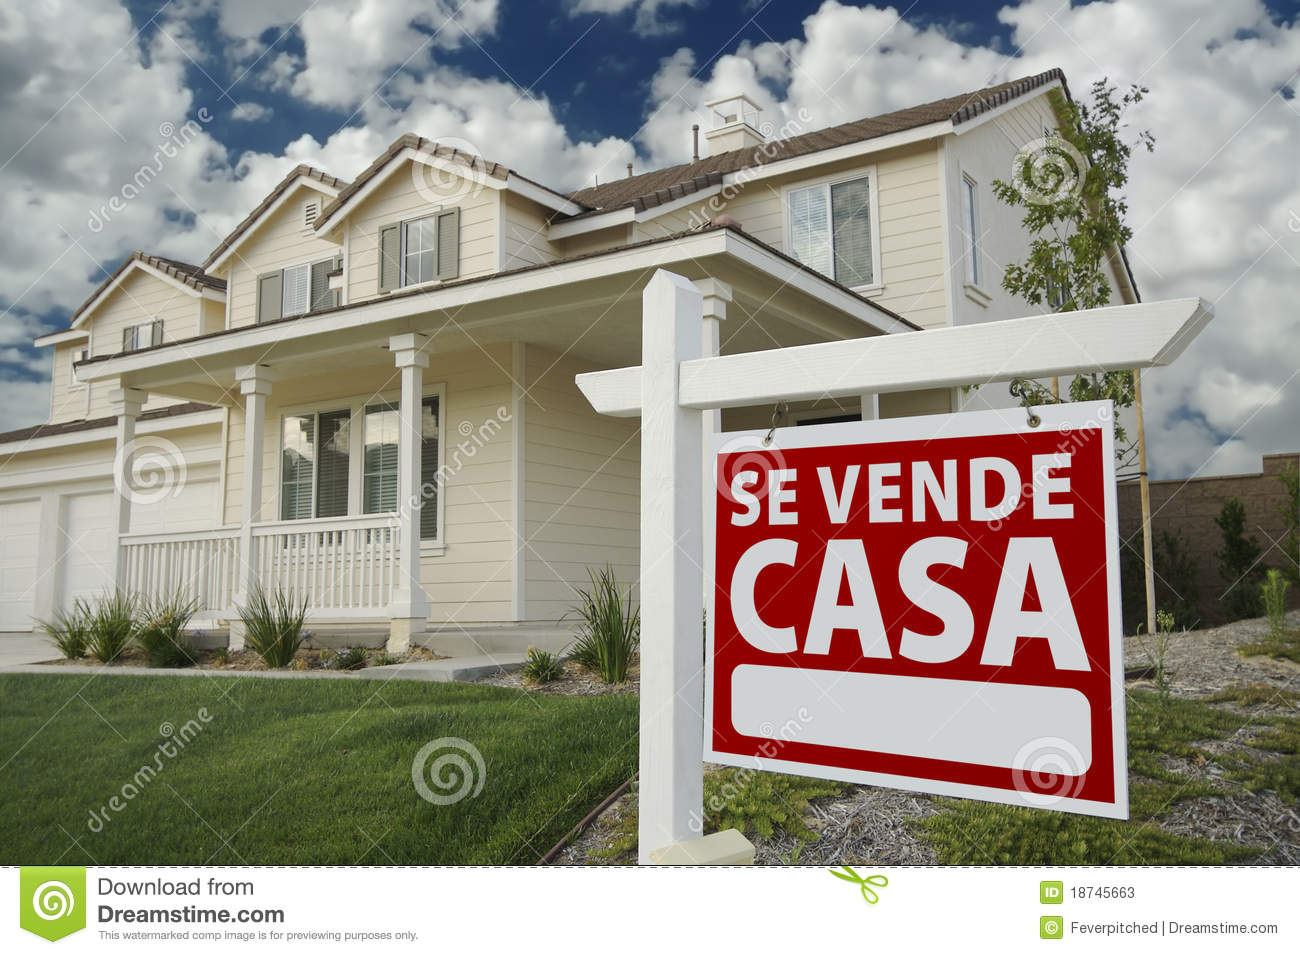 Se vende casa spanish real estate sign and house stock - Come si vende una casa ...